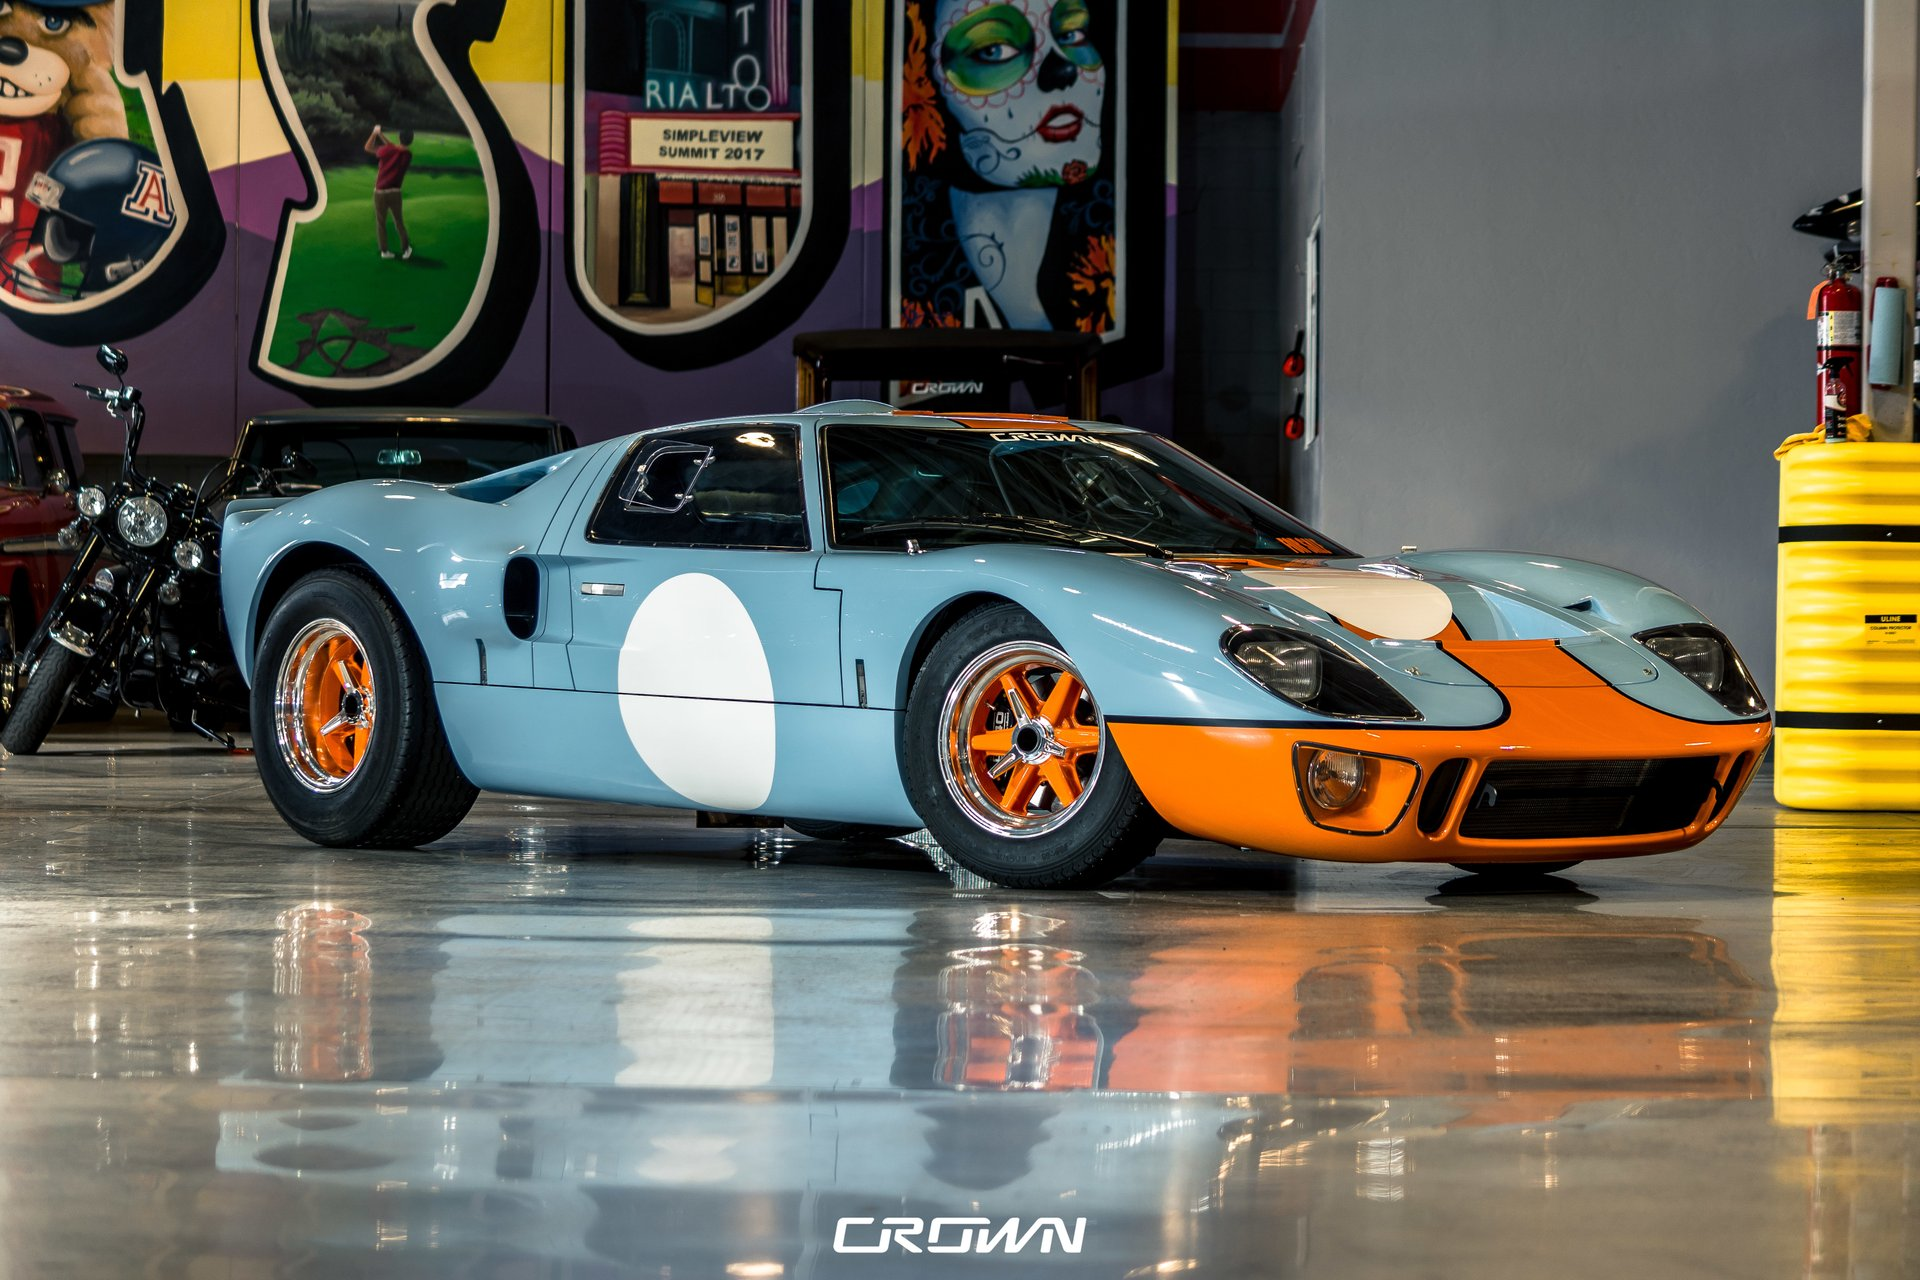 For Sale 1965 Superformance GT40 MKI